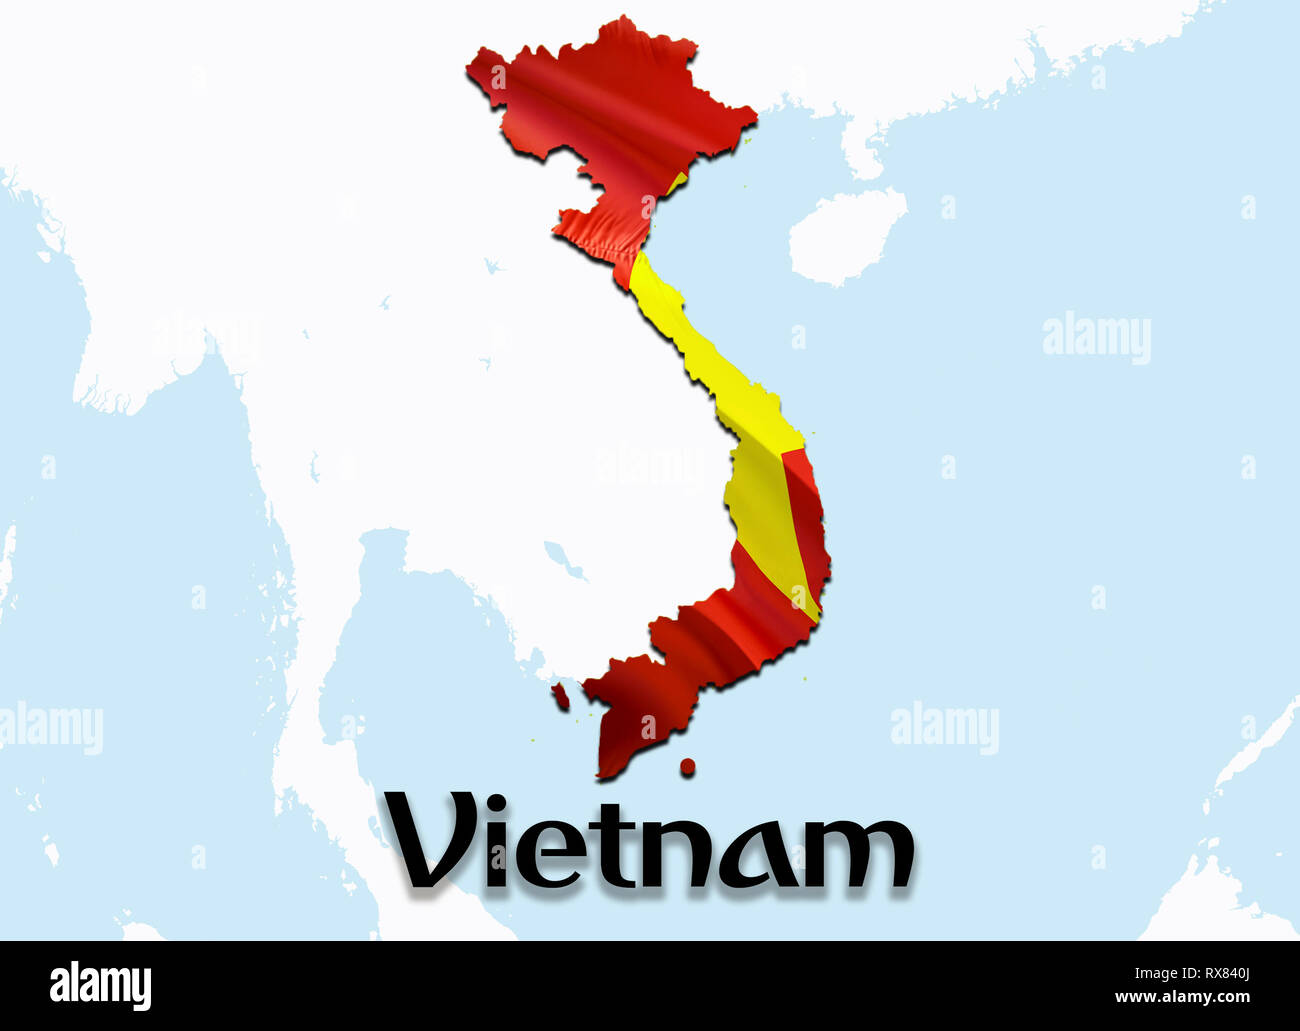 Flag Map Of Vietnam 3d Rendering Vietnam Map And Flag On Asia Map The National Symbol Of Vietnam Hanoi Flag Map Background Image Download Hd Viet Stock Photo Alamy